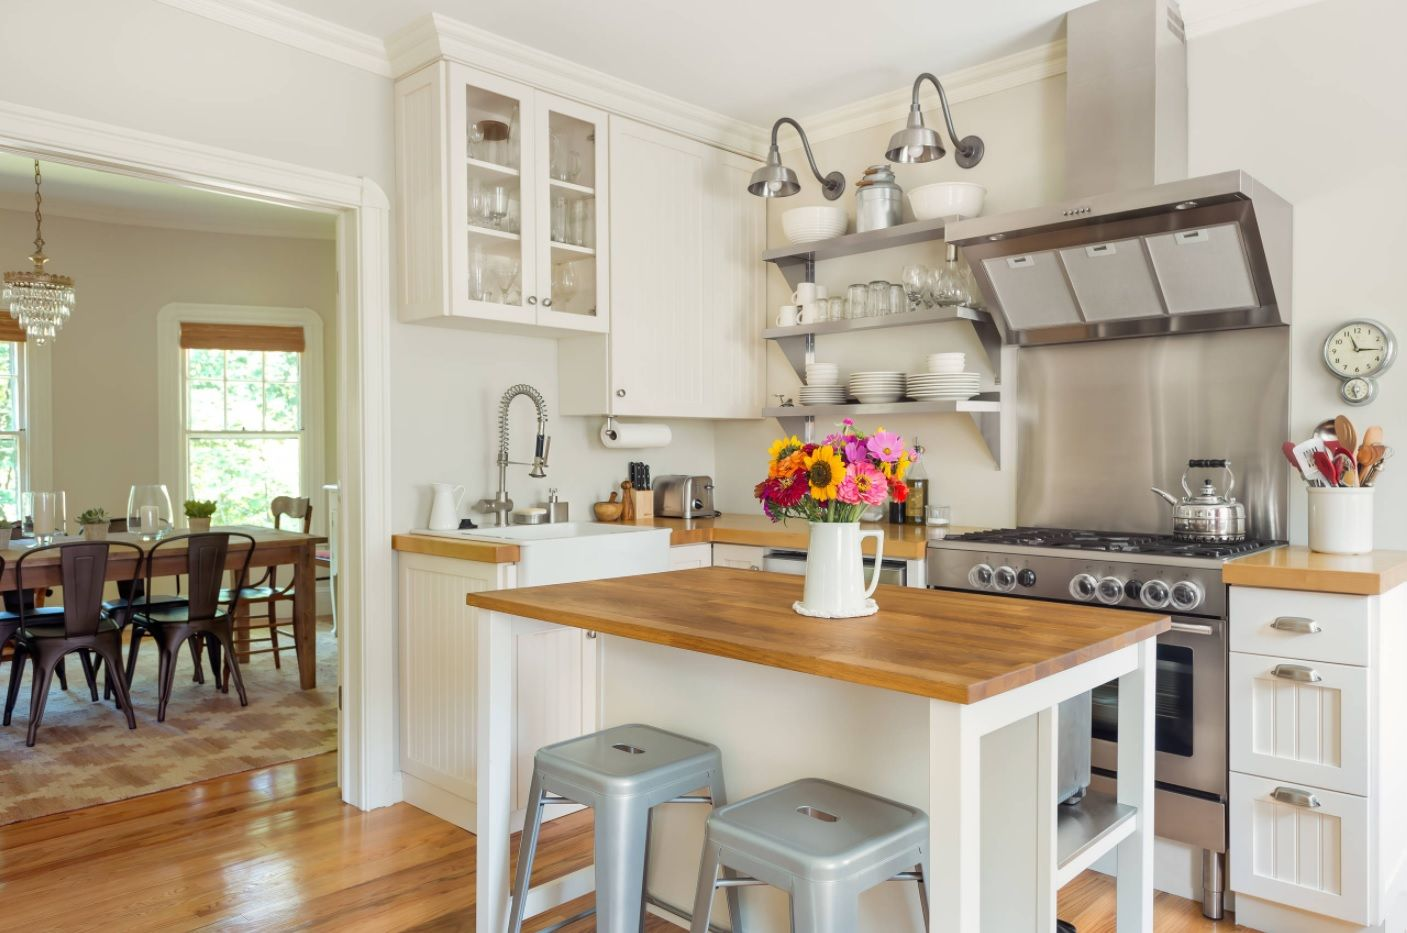 Butcher Block Countertop in Modern Kitchen Interior. Large open layout space with the island and wooden tops